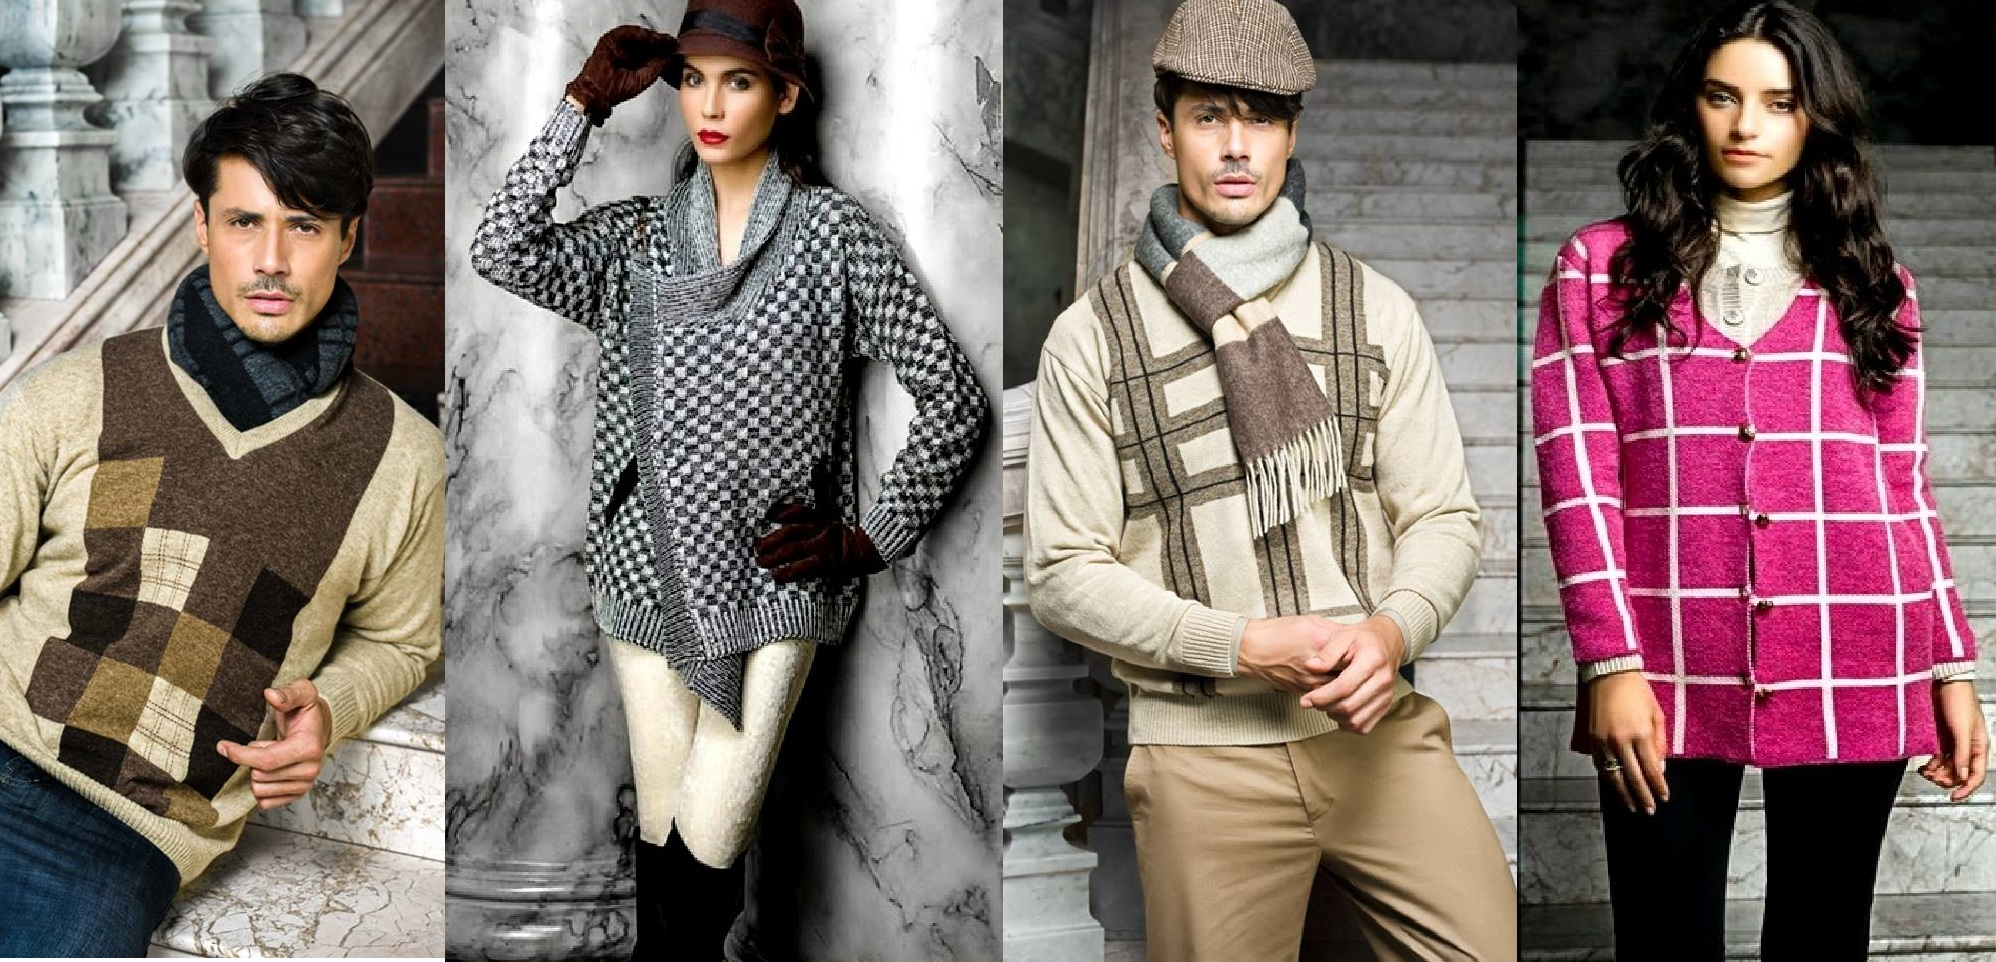 Bonanza Latest Winter Warmth Collection of Sweaters, Jackets & Coats 2014-2015 for Men & Boys (24)